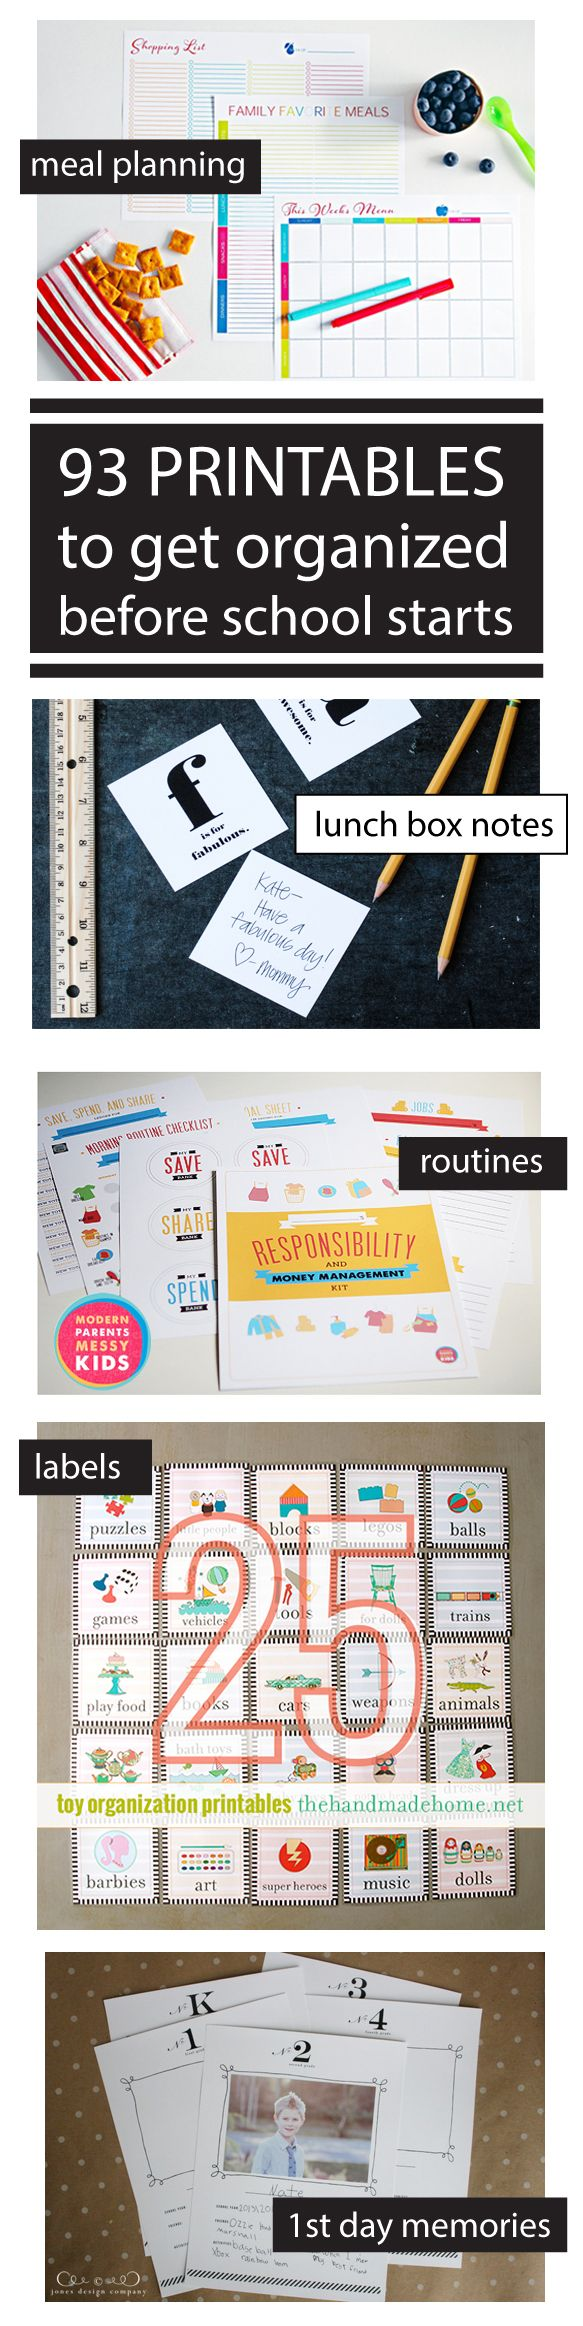 printables including routine charts, 1st day of school picture printables, school info, menu planning, toy organization labels, and more!